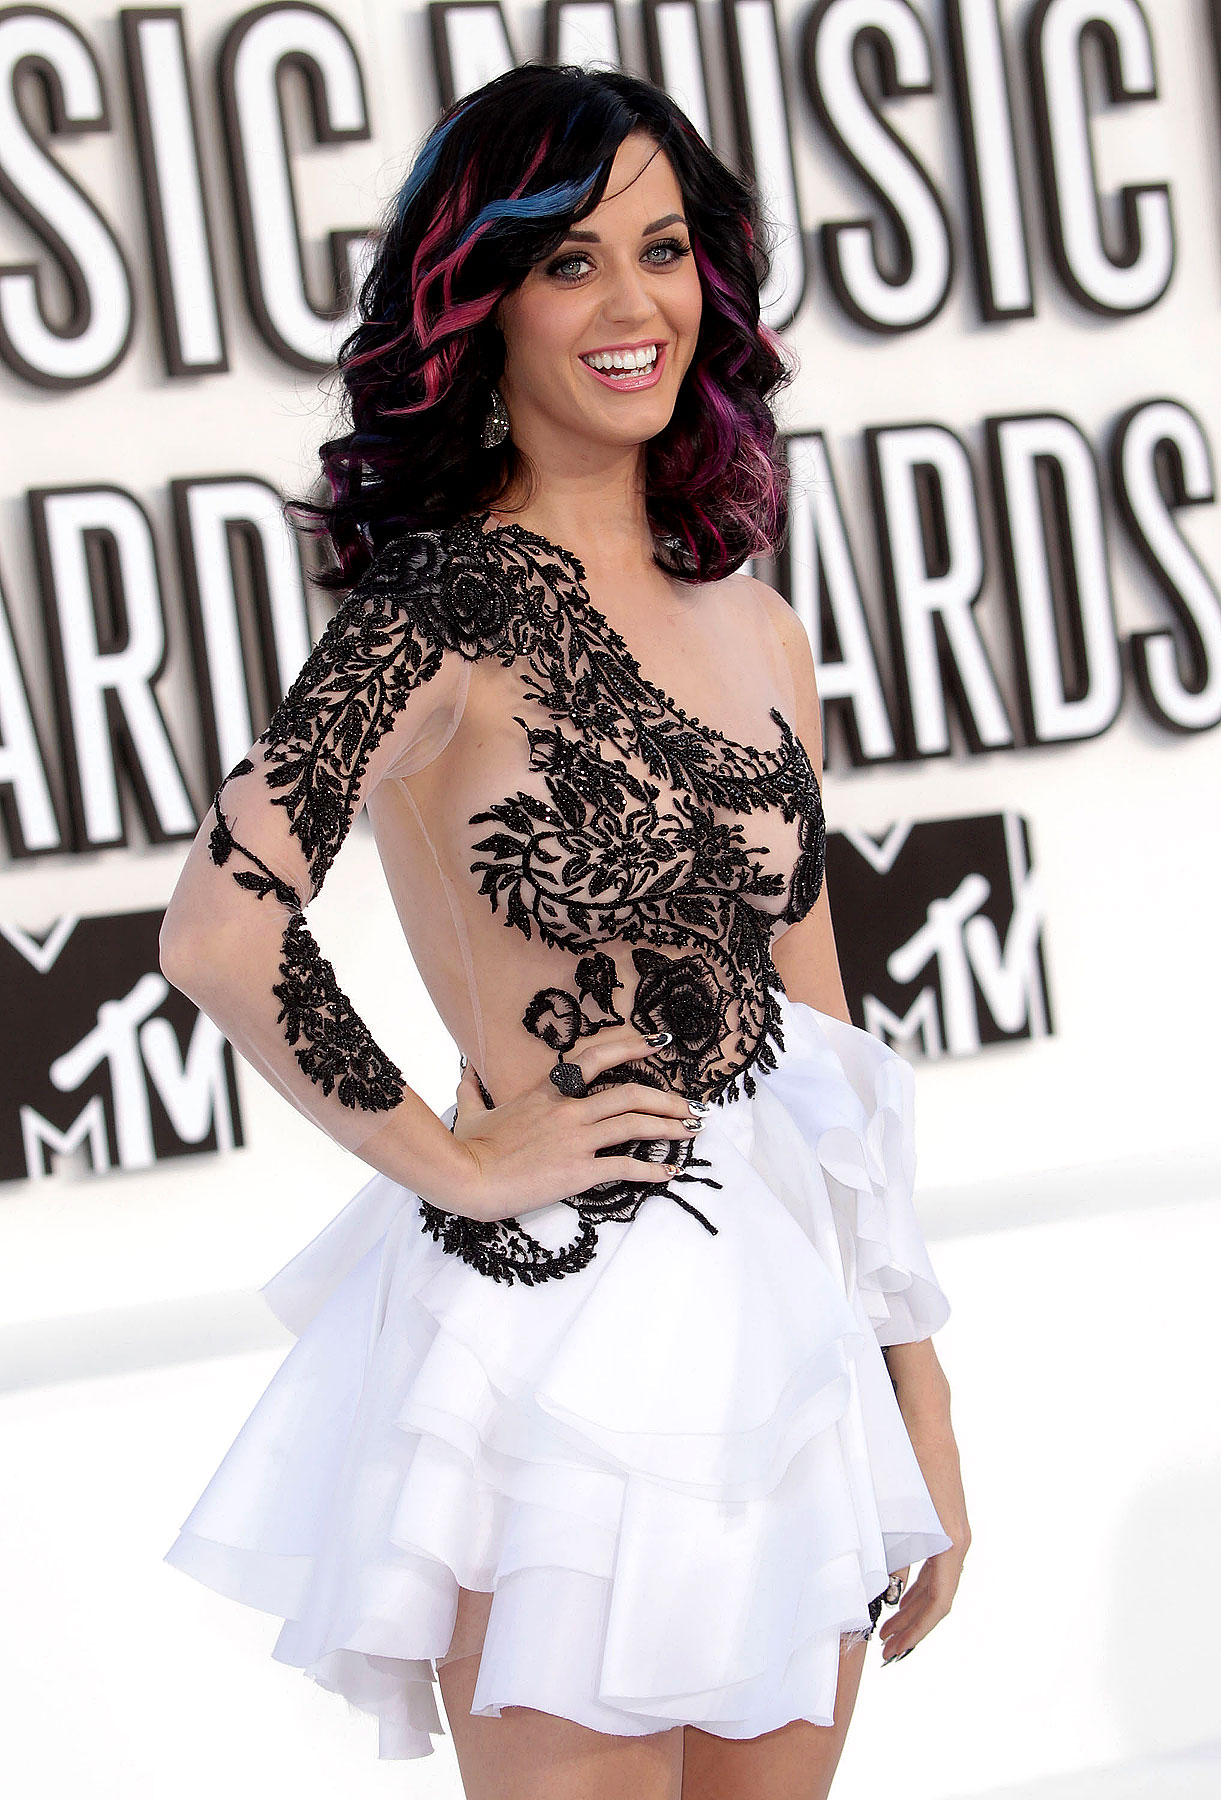 Katy Perry at the 2010 MTV Video Music Awards (PHOTOS)